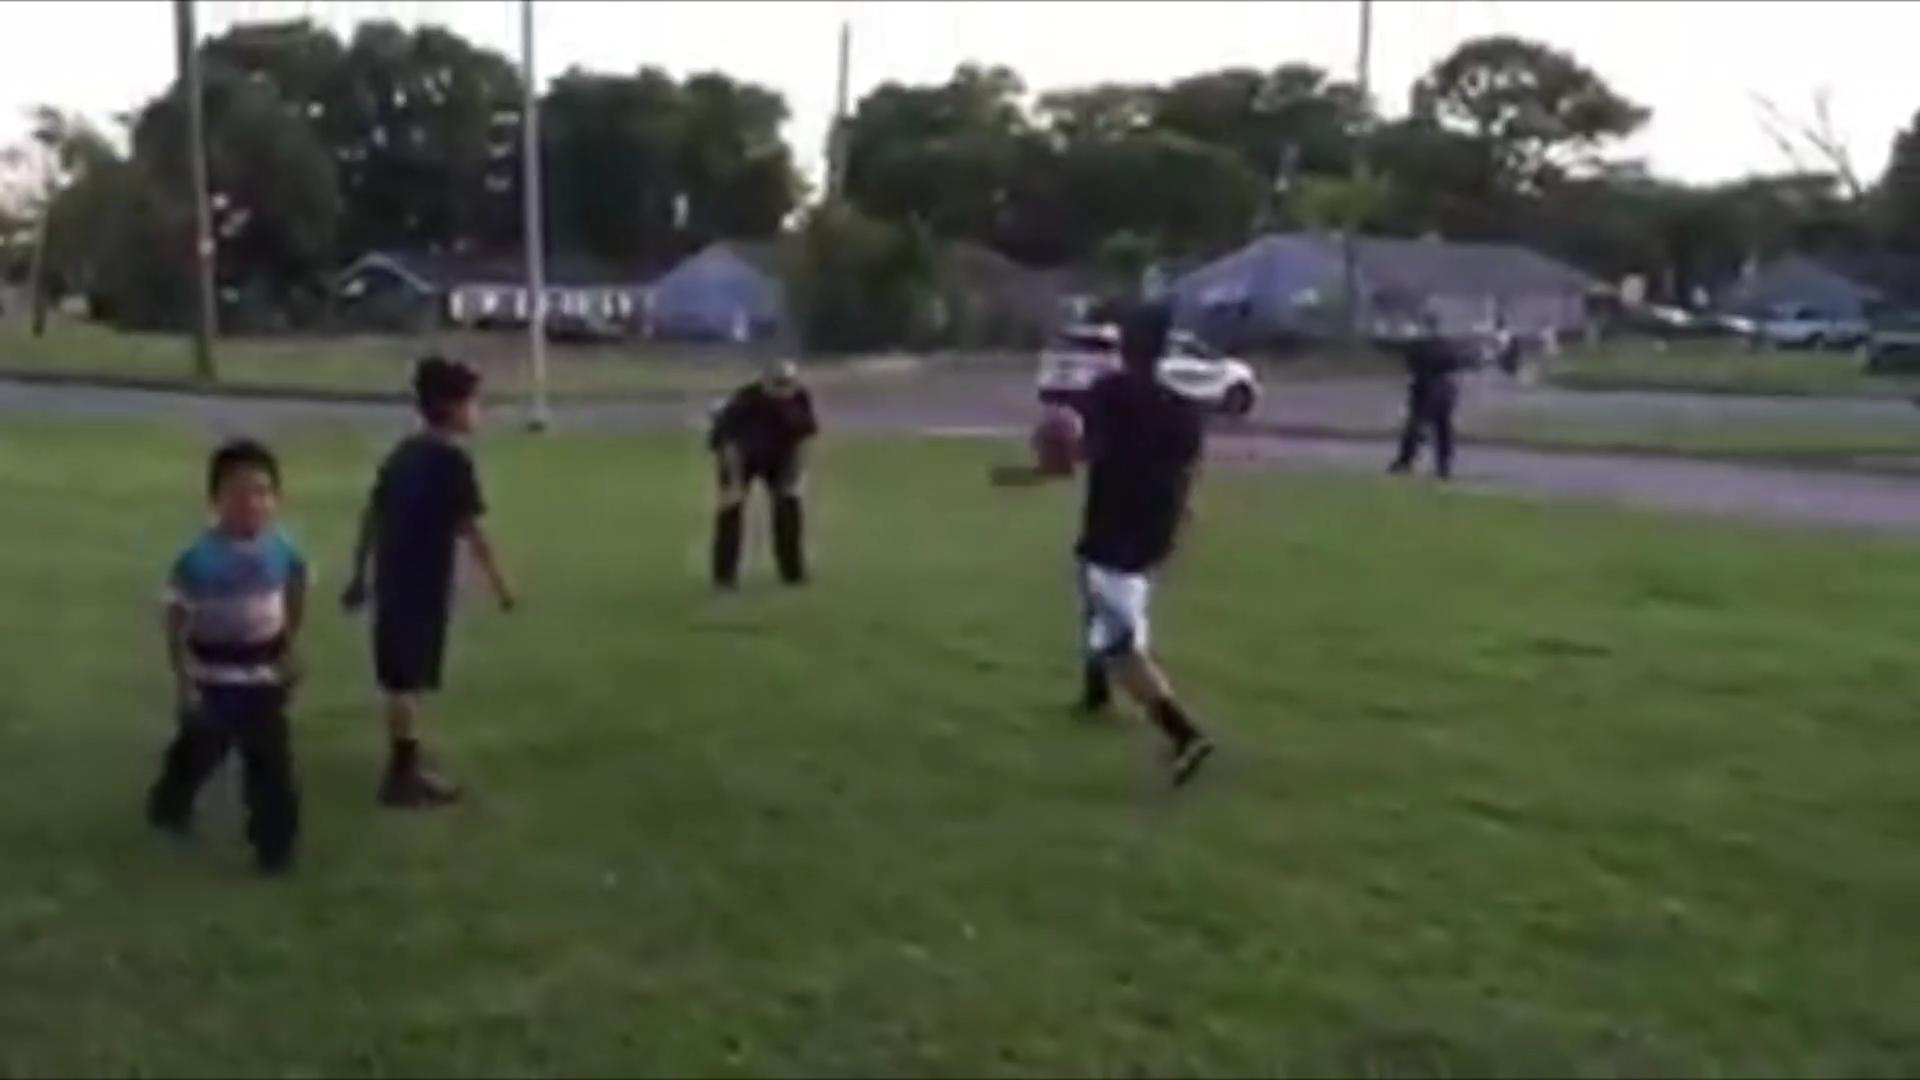 Cops Called to Stop Kids' Soccer Game Join In Instead